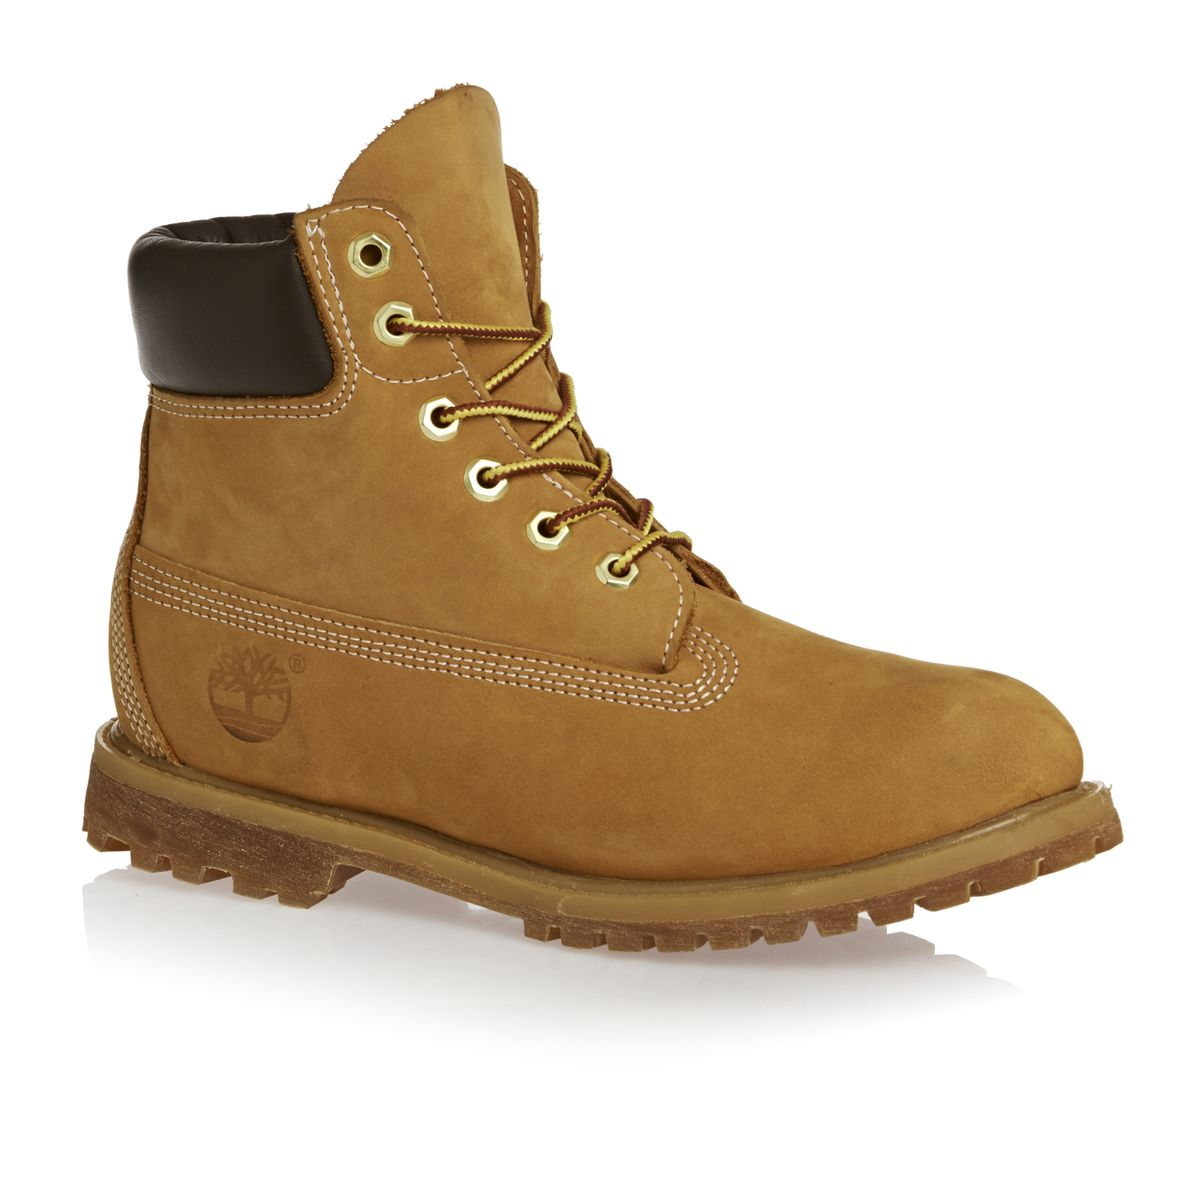 Timberland Icon 6in Premium Waterproof Ladies Boots